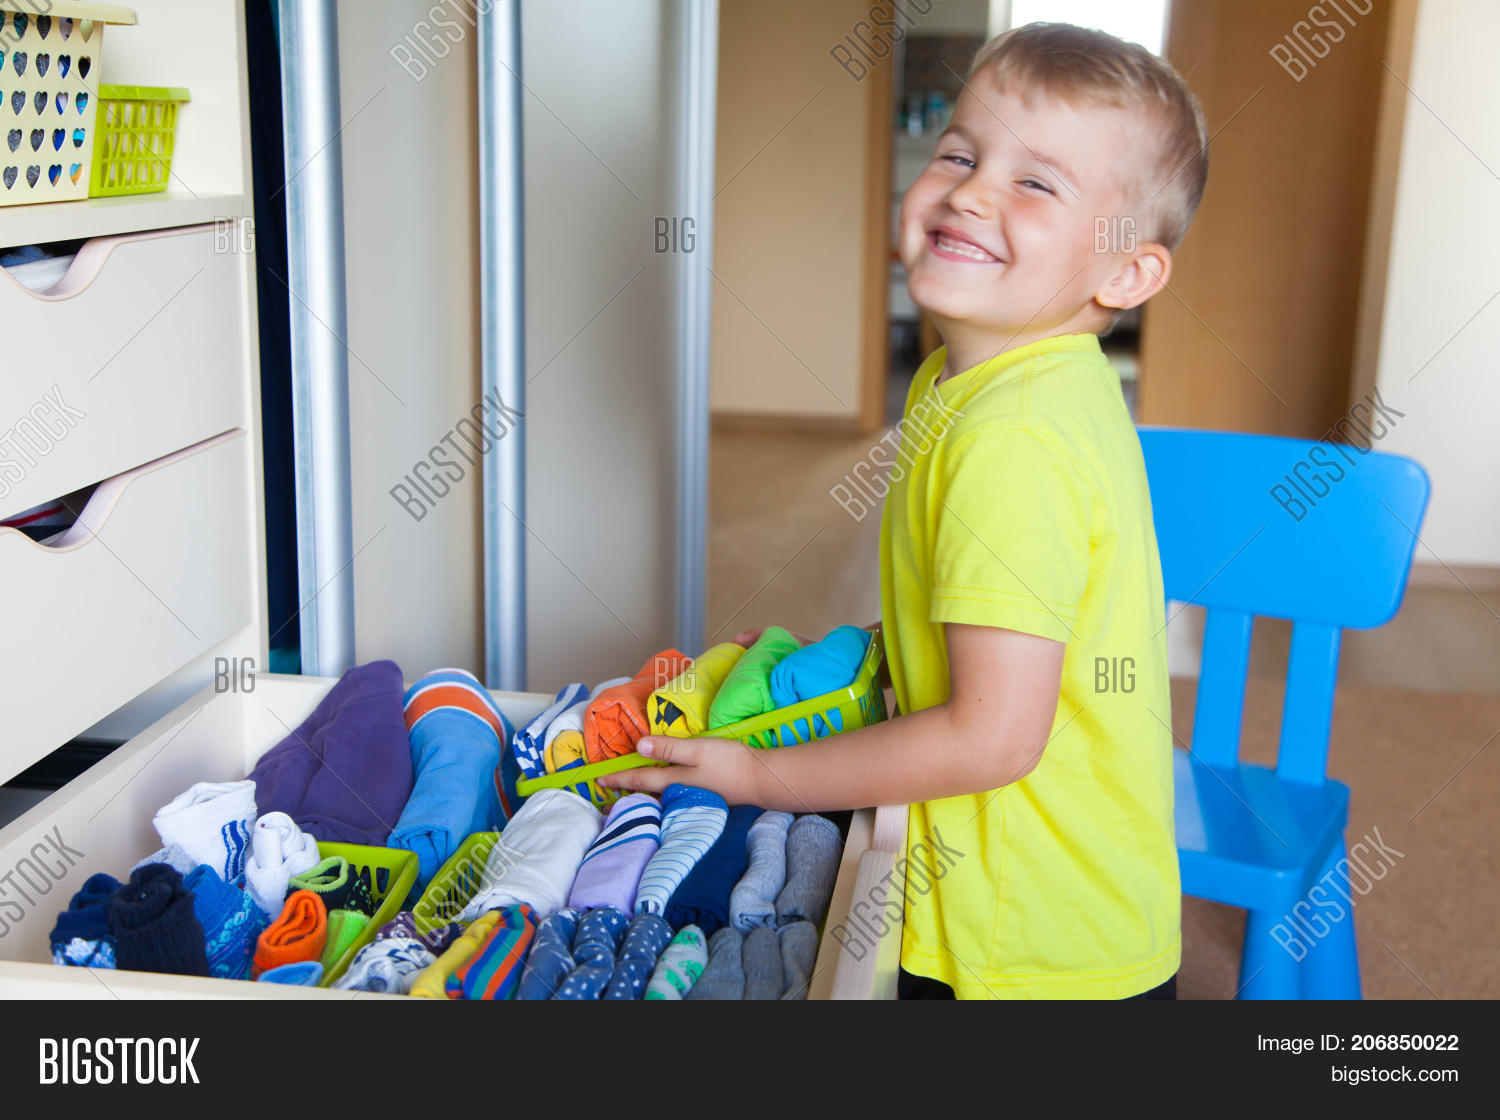 The Child Puts His Clothes On. The Boy Pulls The T-shirt Out Of The Closet.